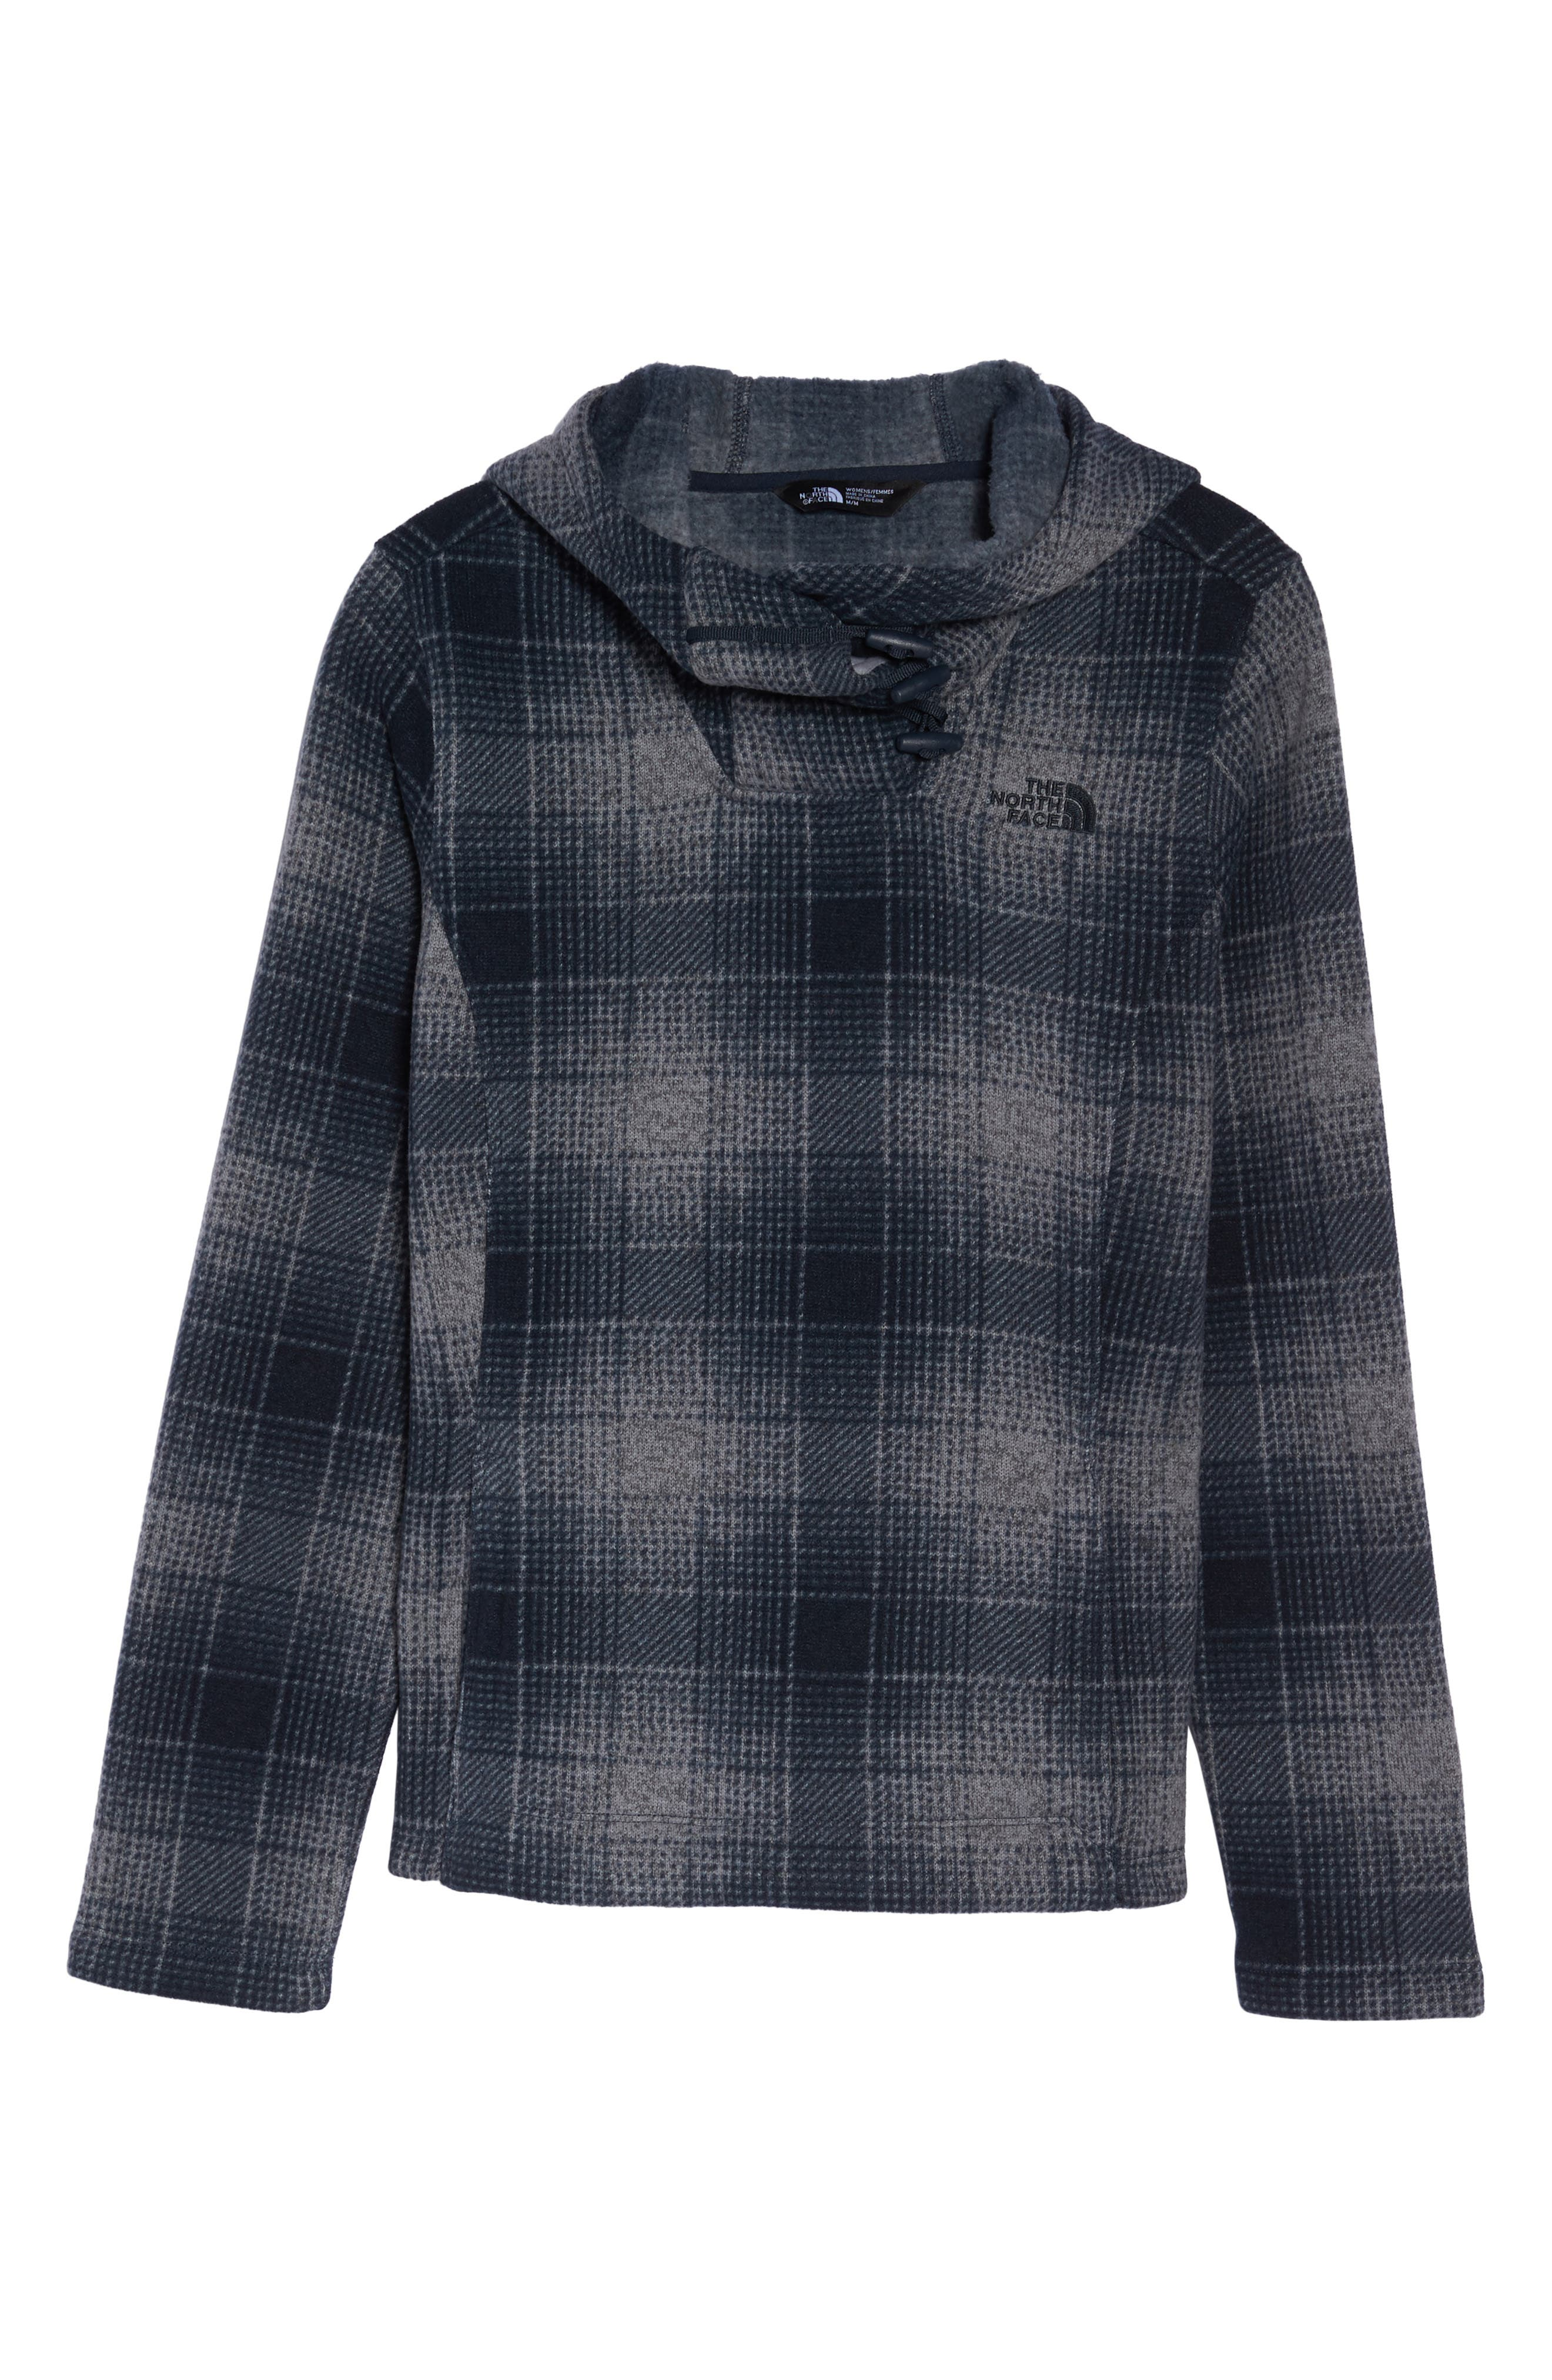 Crescent Hooded Pullover,                             Alternate thumbnail 4, color,                             Mid Grey Ombre Plaidsmallprint